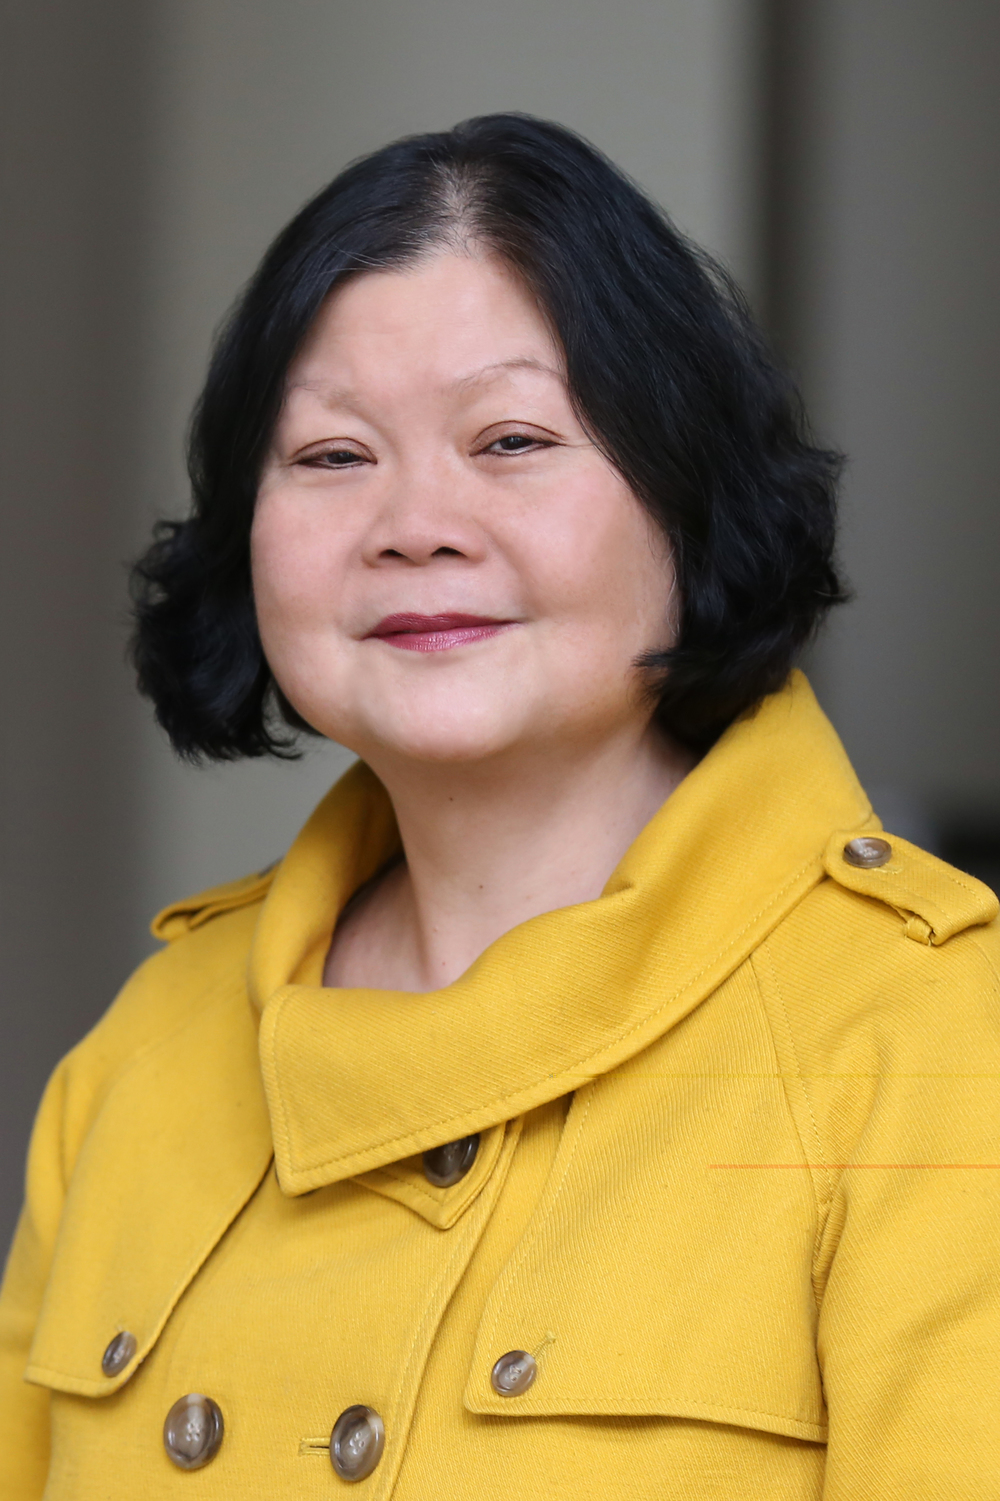 Carolyn Woo (Santa clara Commencement Speaker; Photo by Santa Clara)